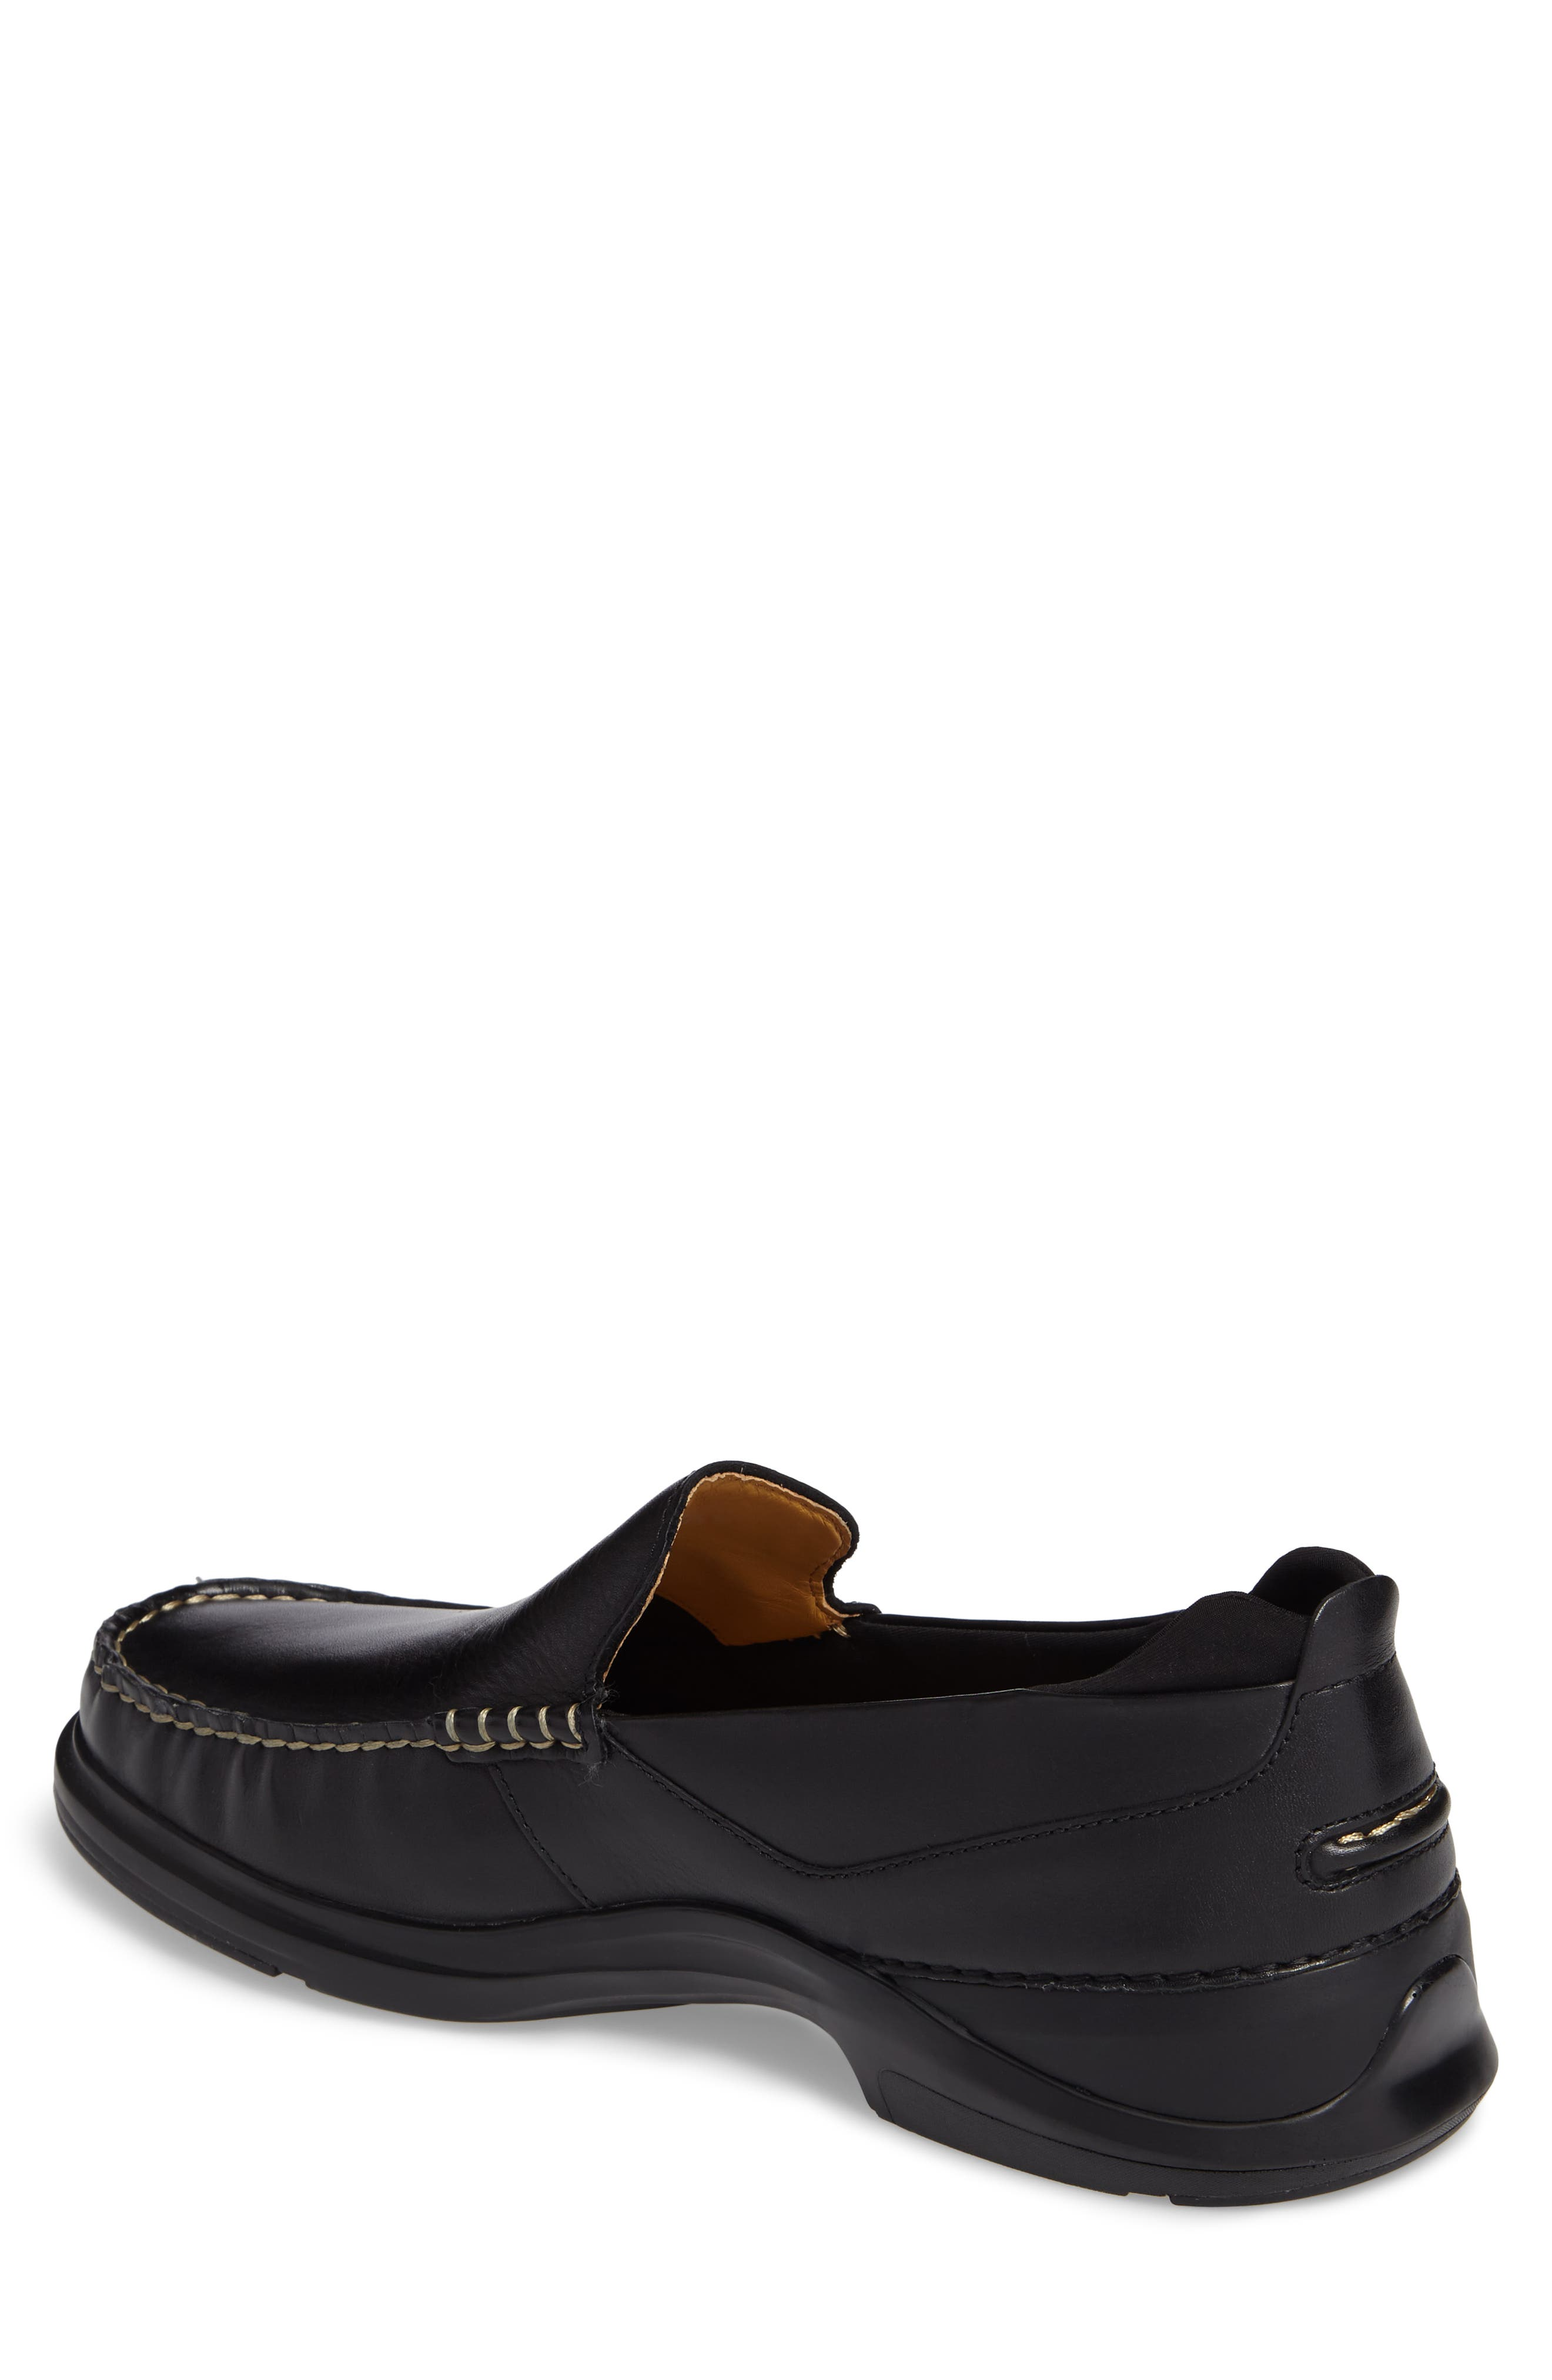 Bancroft Loafer,                             Alternate thumbnail 2, color,                             Black